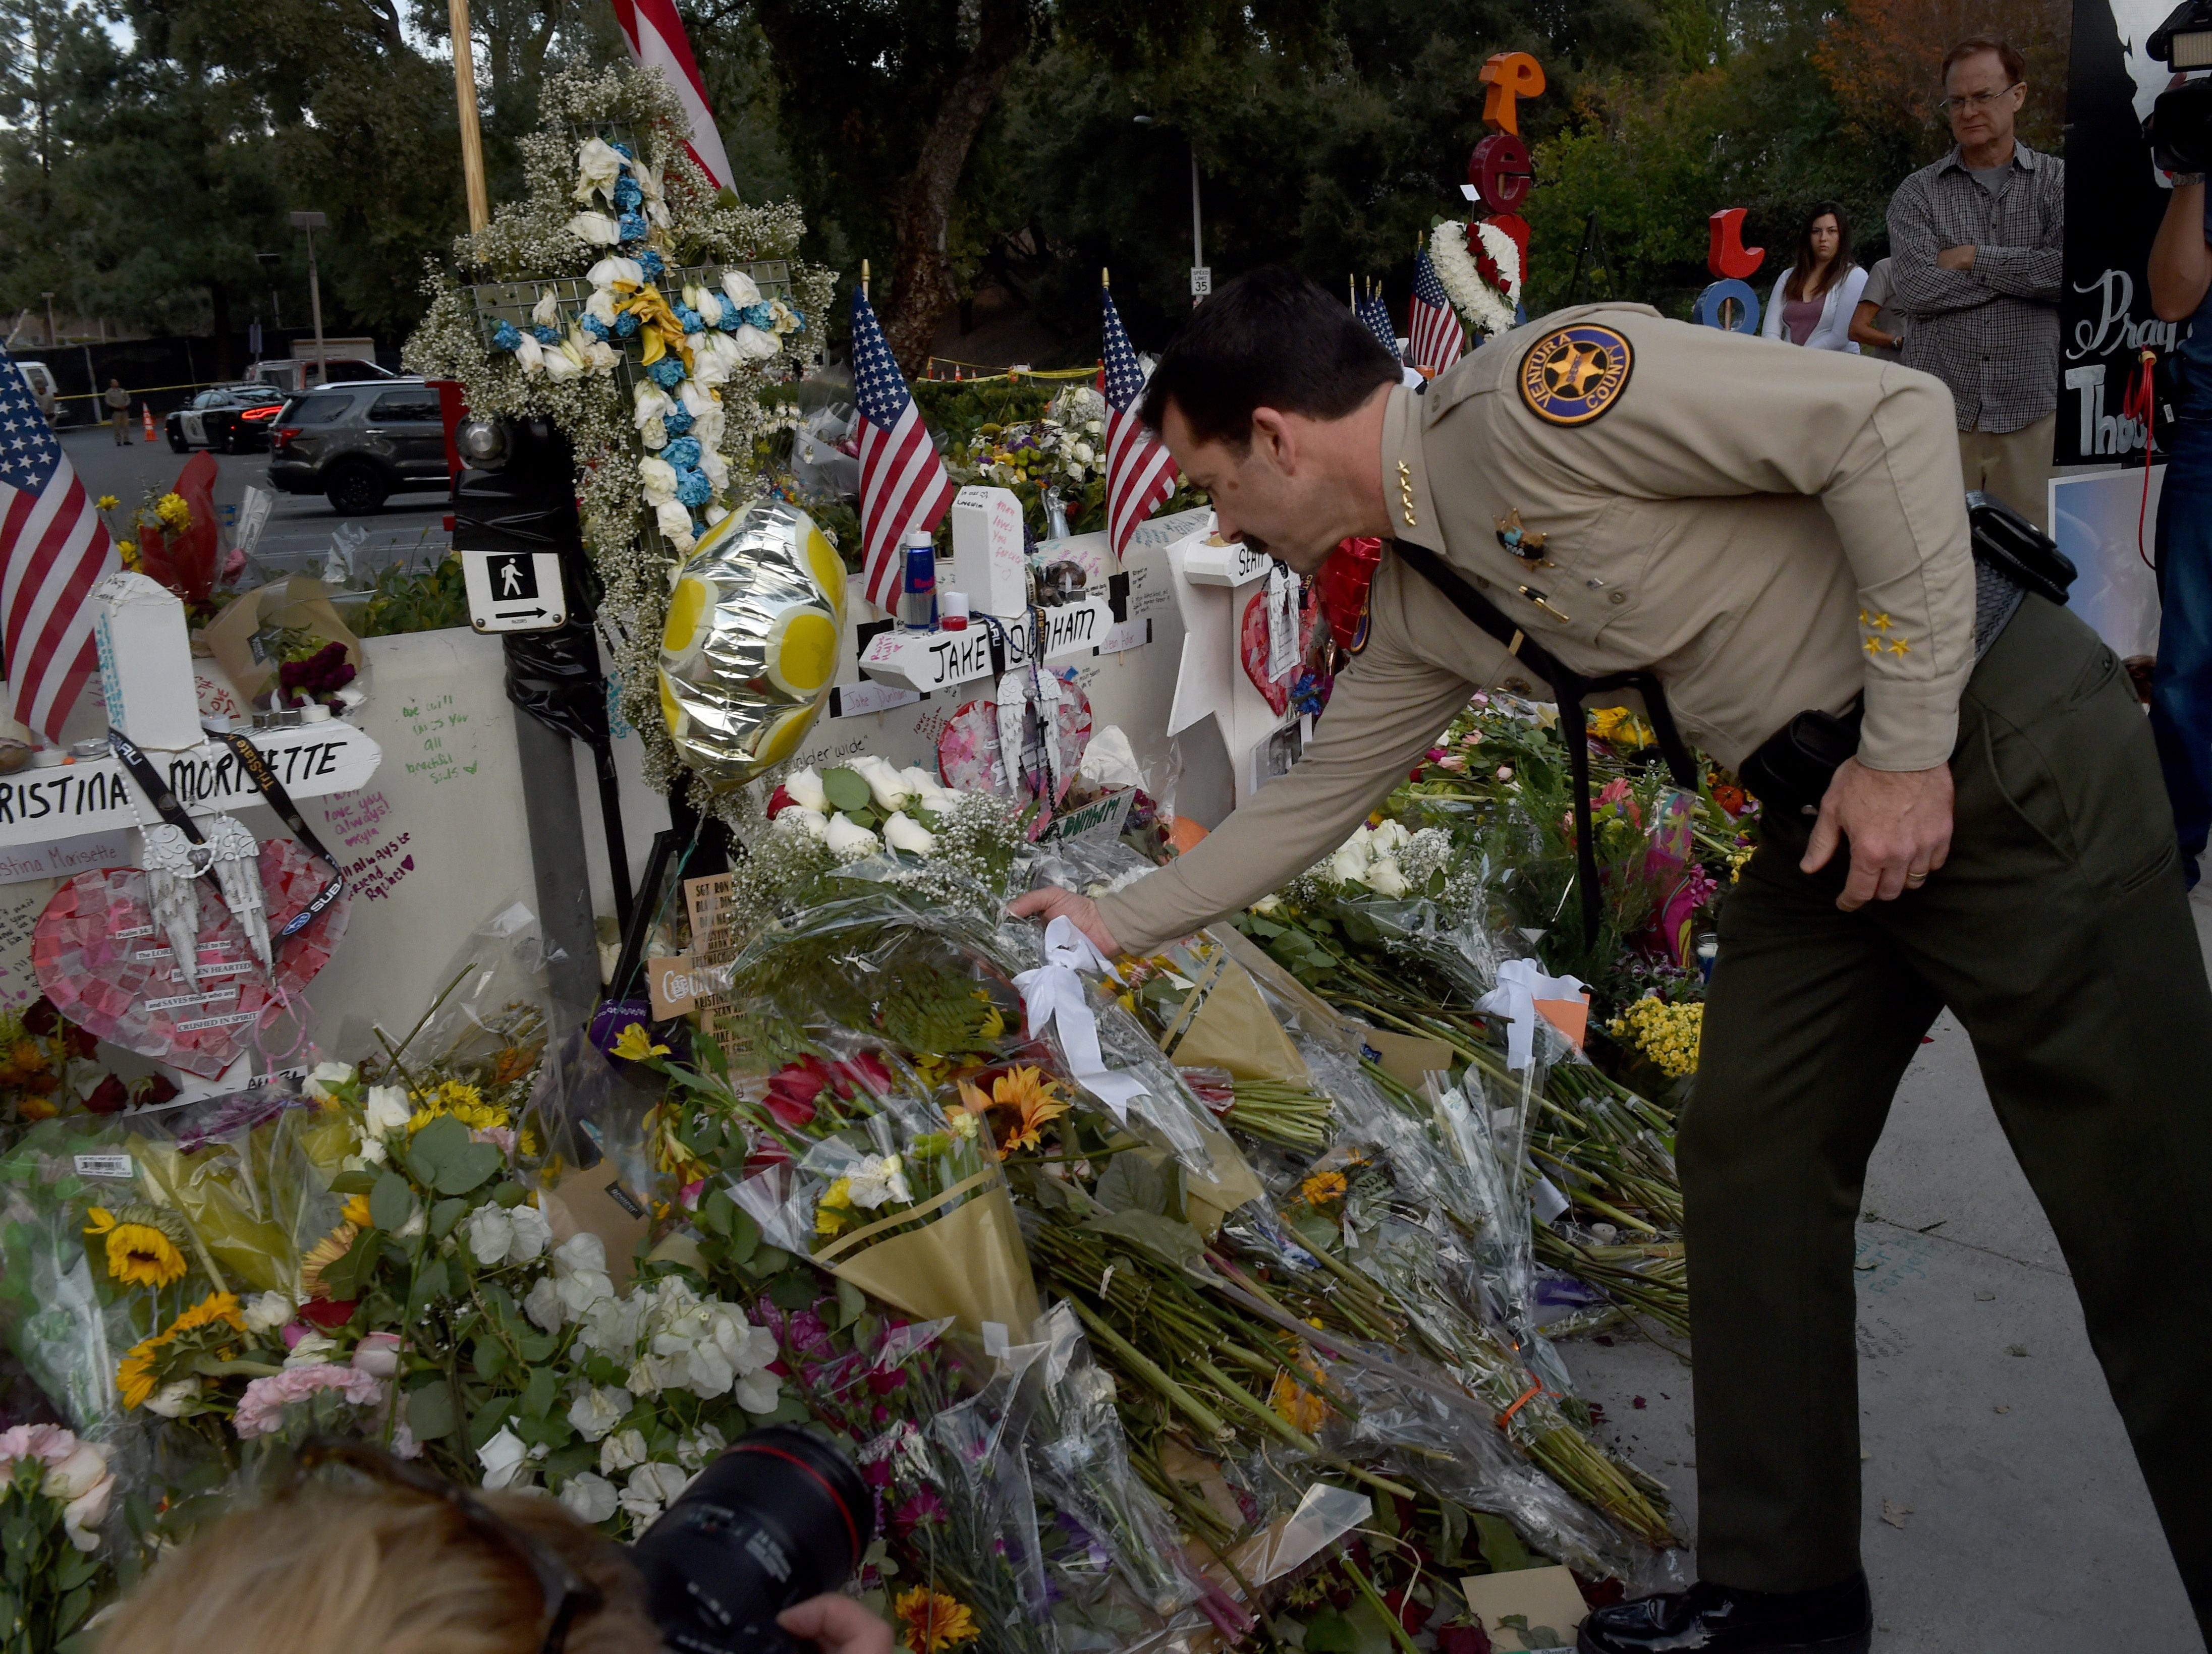 Ventura County Sheriff Bill Ayub places flowers Thursday on a memorial wall near the Borderline Bar & Grill in Thousand Oaks, where 12 people were killed Nov. 7. One of those slain was sheriff's Sgt. Ron Helus.